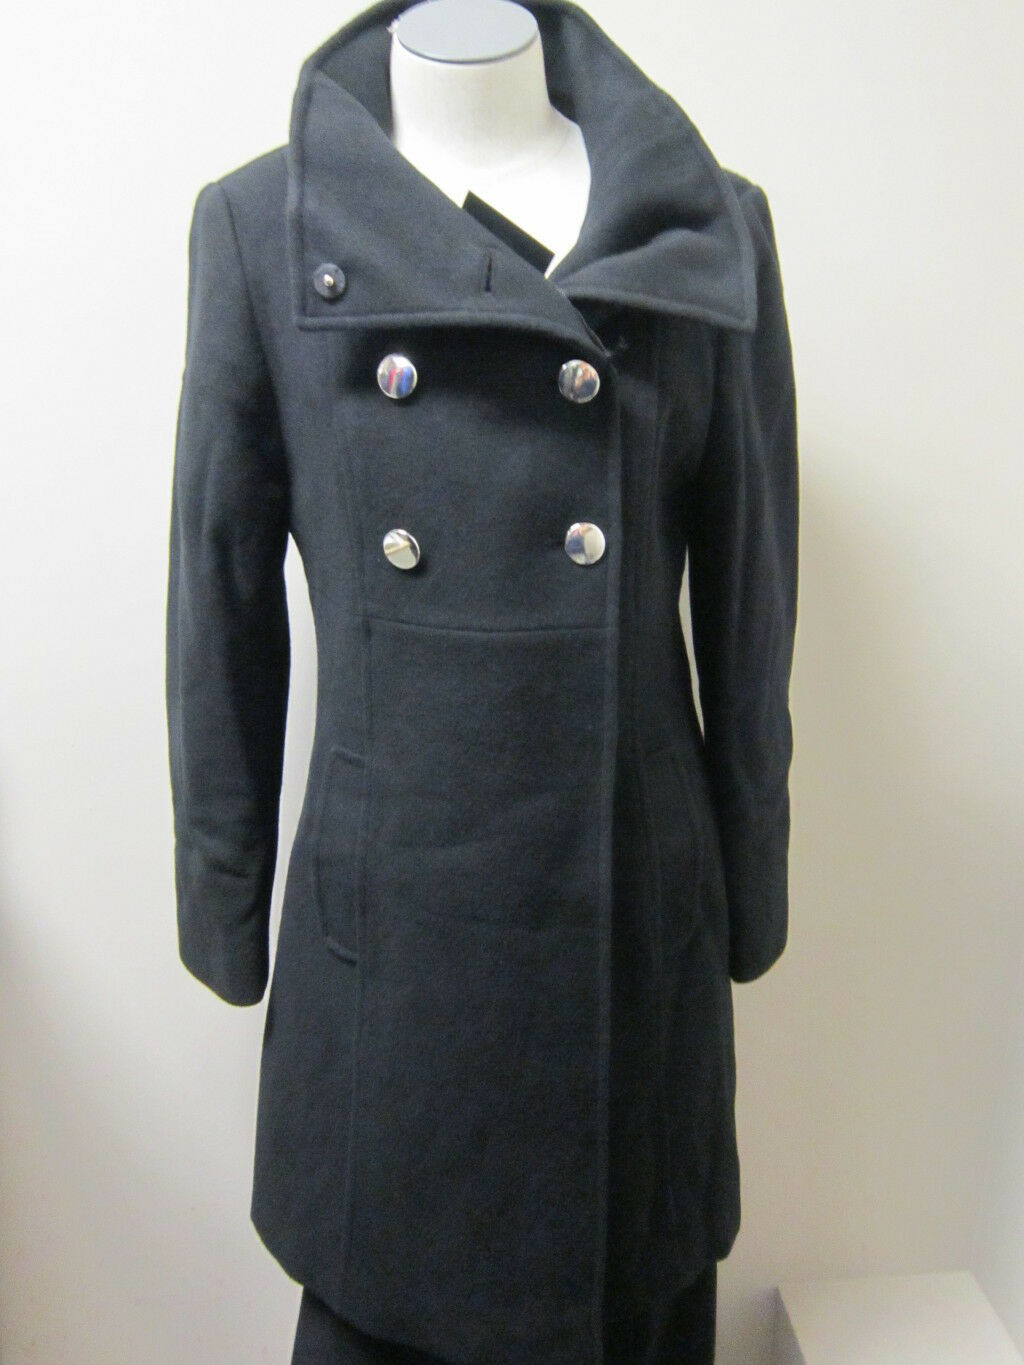 Chequer Petite Double Breasted Military Inspired Coat 6P NWT